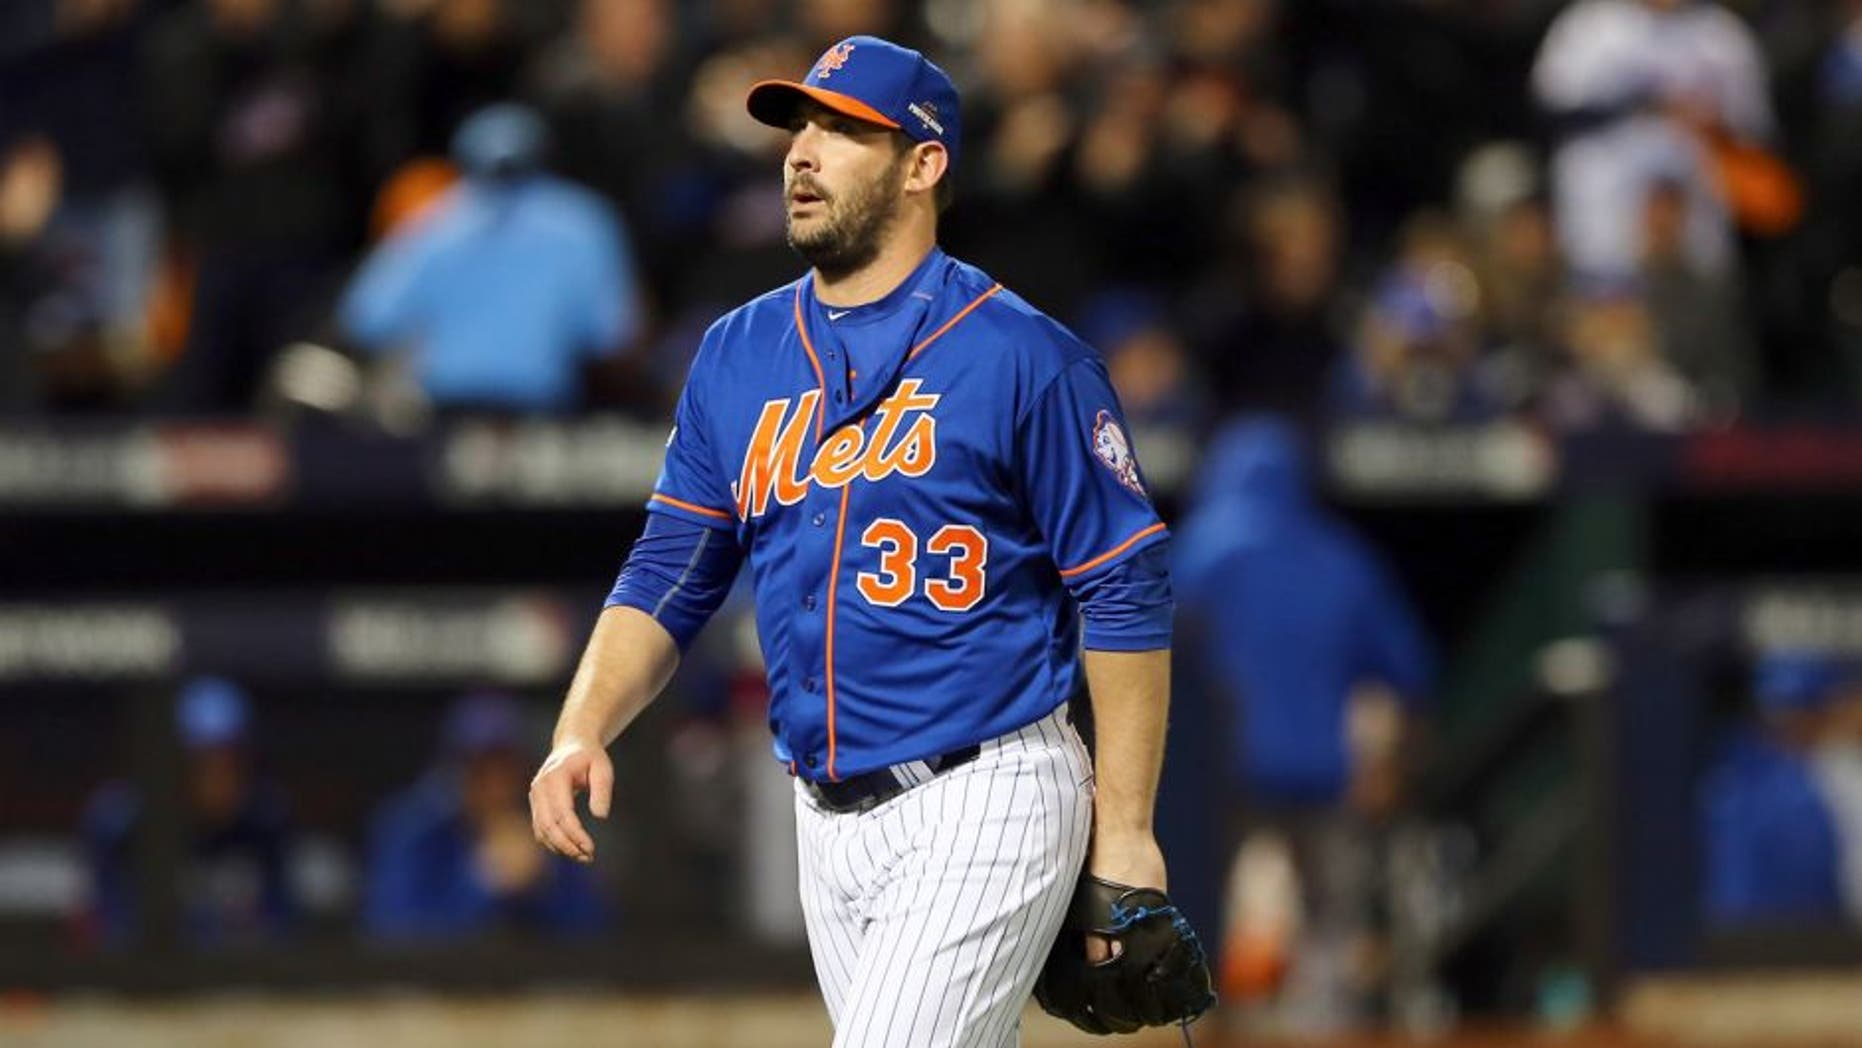 NEW YORK, NY - OCTOBER 17: Matt Harvey #33 of the New York Mets walks back to the dugout after closing out an inning against the Chicago Cubs during game one of the 2015 MLB National League Championship Series at Citi Field on October 17, 2015 in the Flushing neighborhood of the Queens borough of New York City. (Photo by Elsa/Getty Images)